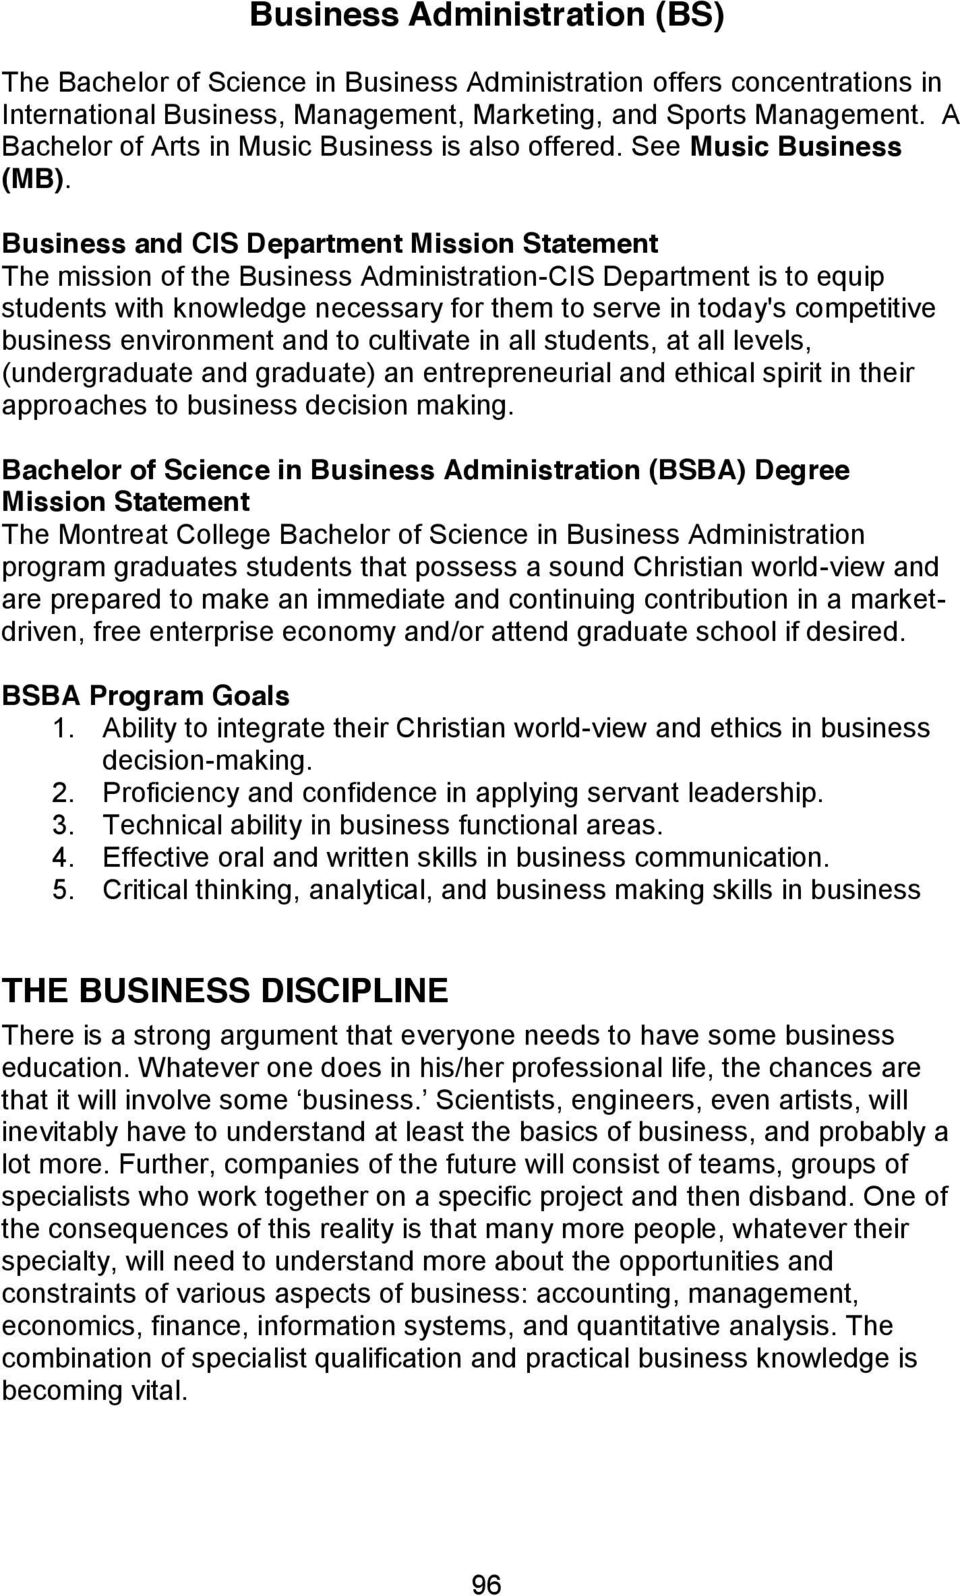 Business and CIS Department Mission Statement The mission of the Business Administration-CIS Department is to equip students with knowledge necessary for them to serve in today's competitive business